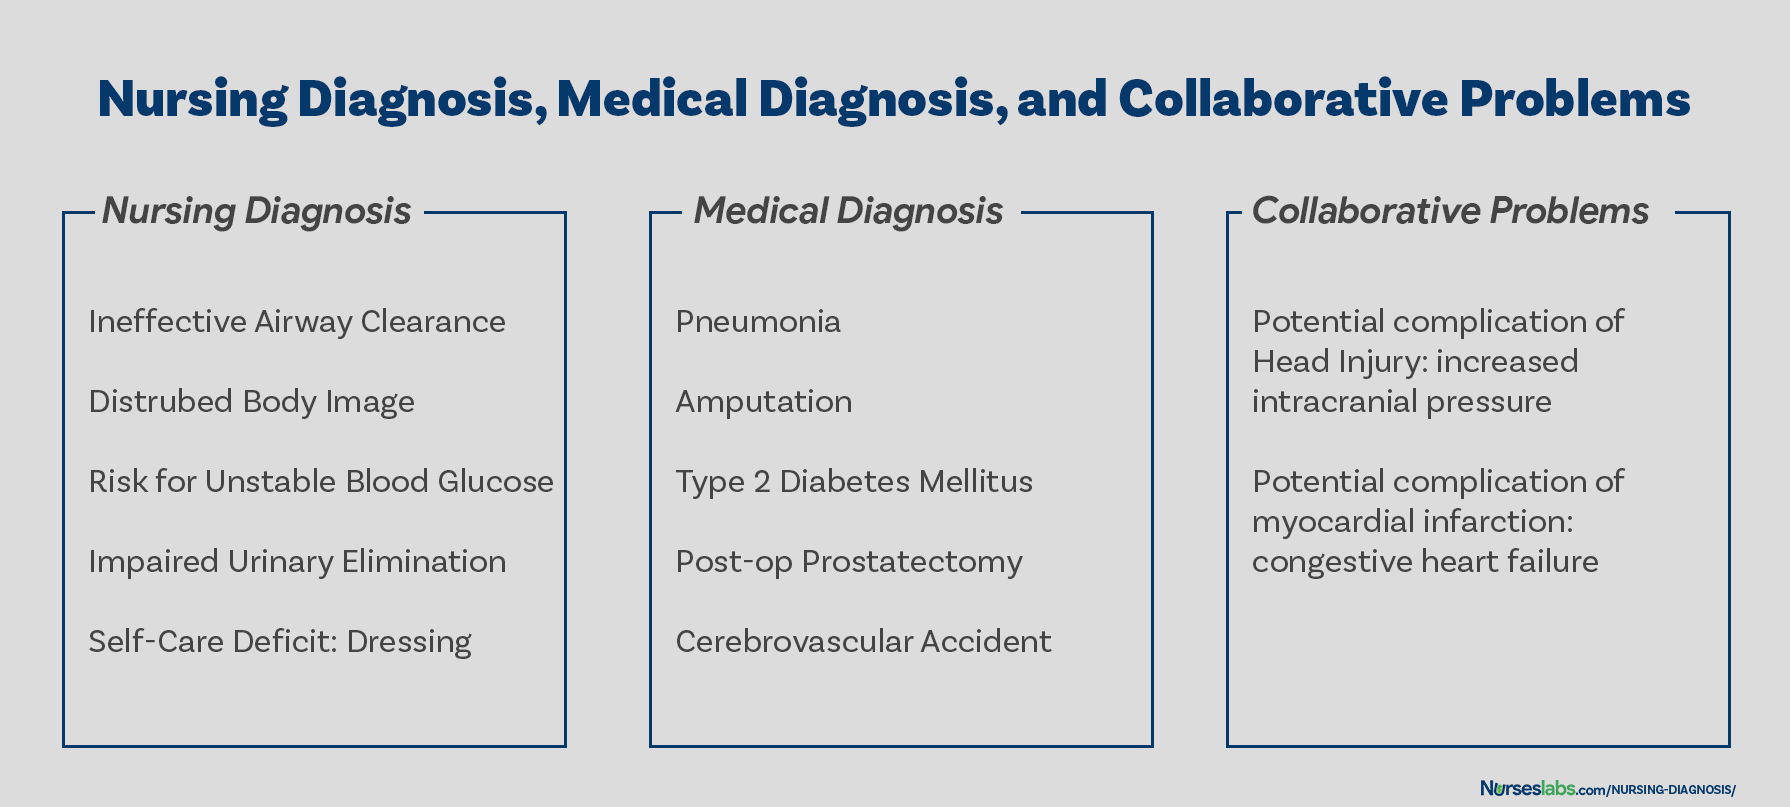 Examples of different nursing diagnoses, medical diagnoses, and collaborative problems –to show comparison.